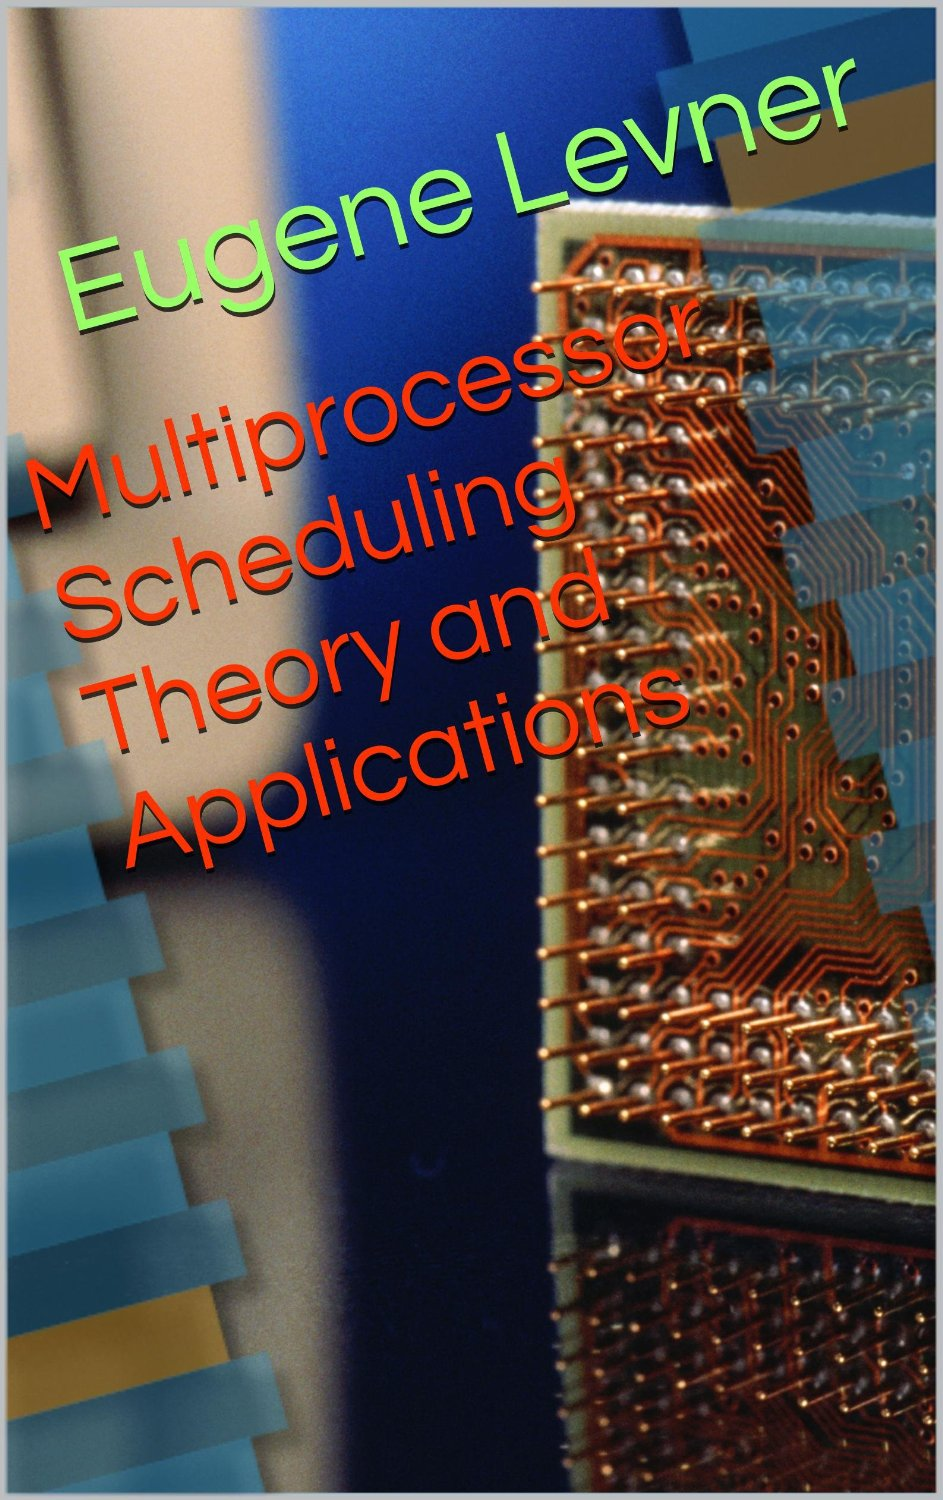 Multiprocessor Scheduling Theory and Applications free download